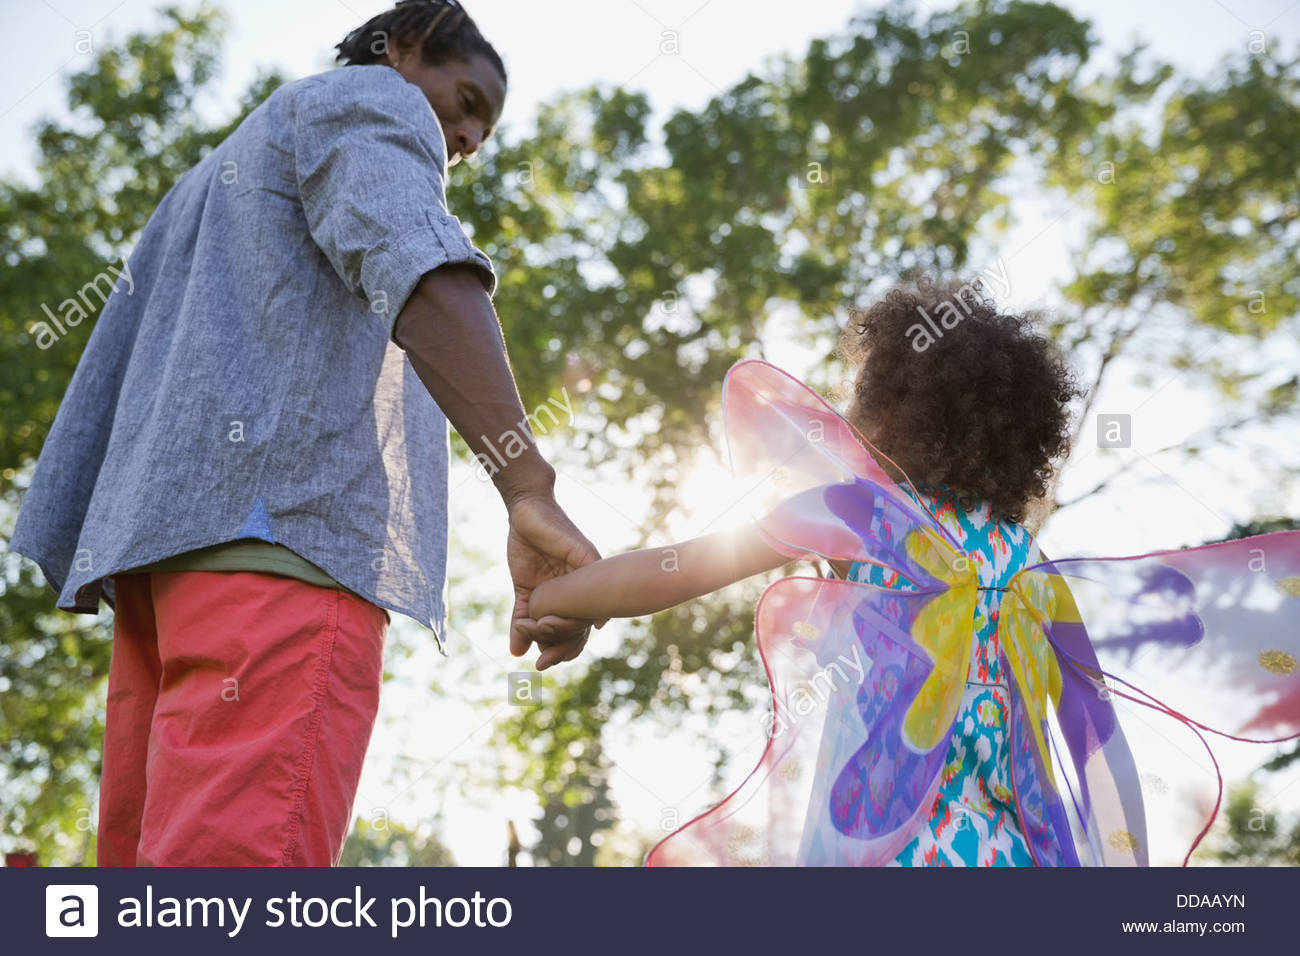 Father and daughter holding hands at park - Stock Image